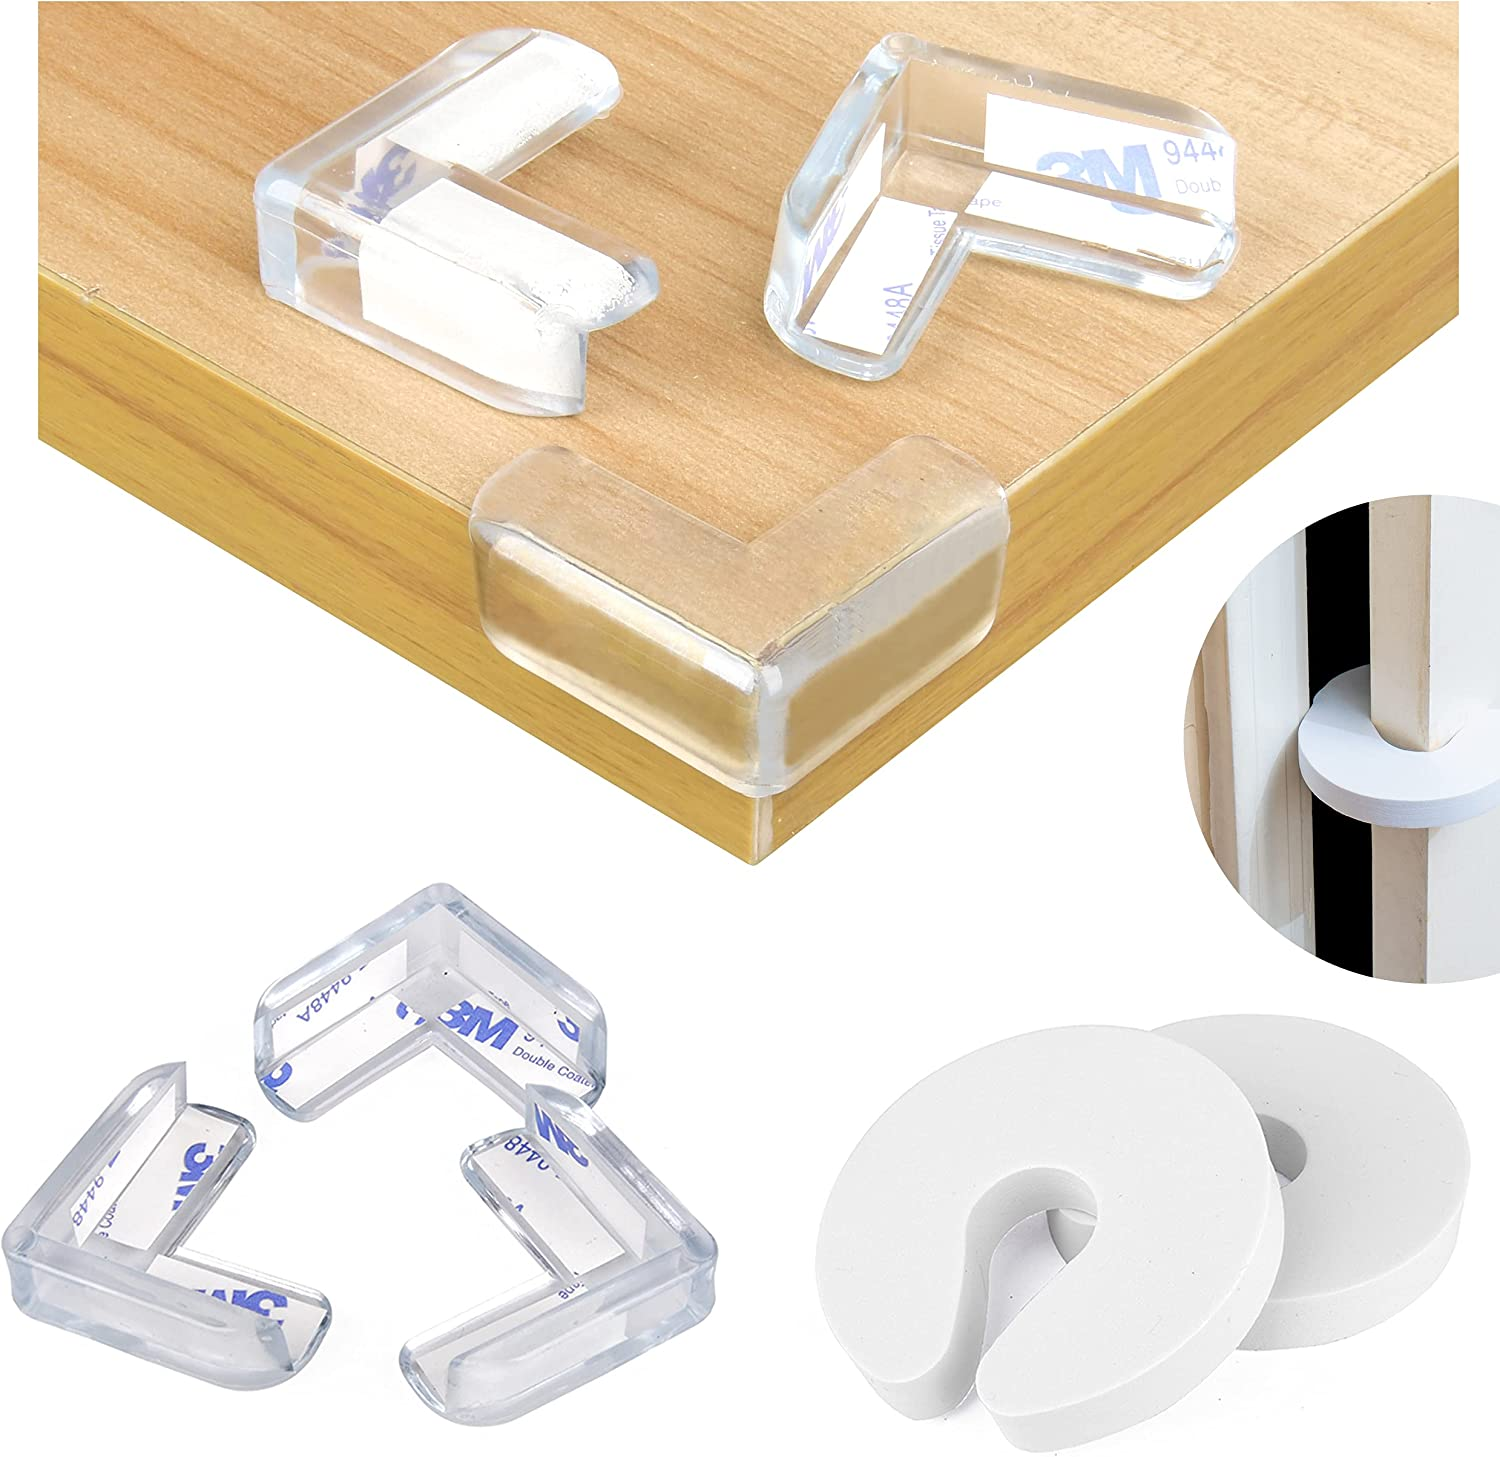 Dodo Babies Corner Protector Edge Guards, Set of 24 Table Corner Protectors for Baby – Transparent Furniture Bumpers Baby Proofing Corner Guards – Strong Glue – Includes 2 Door Slam Stopper Safety